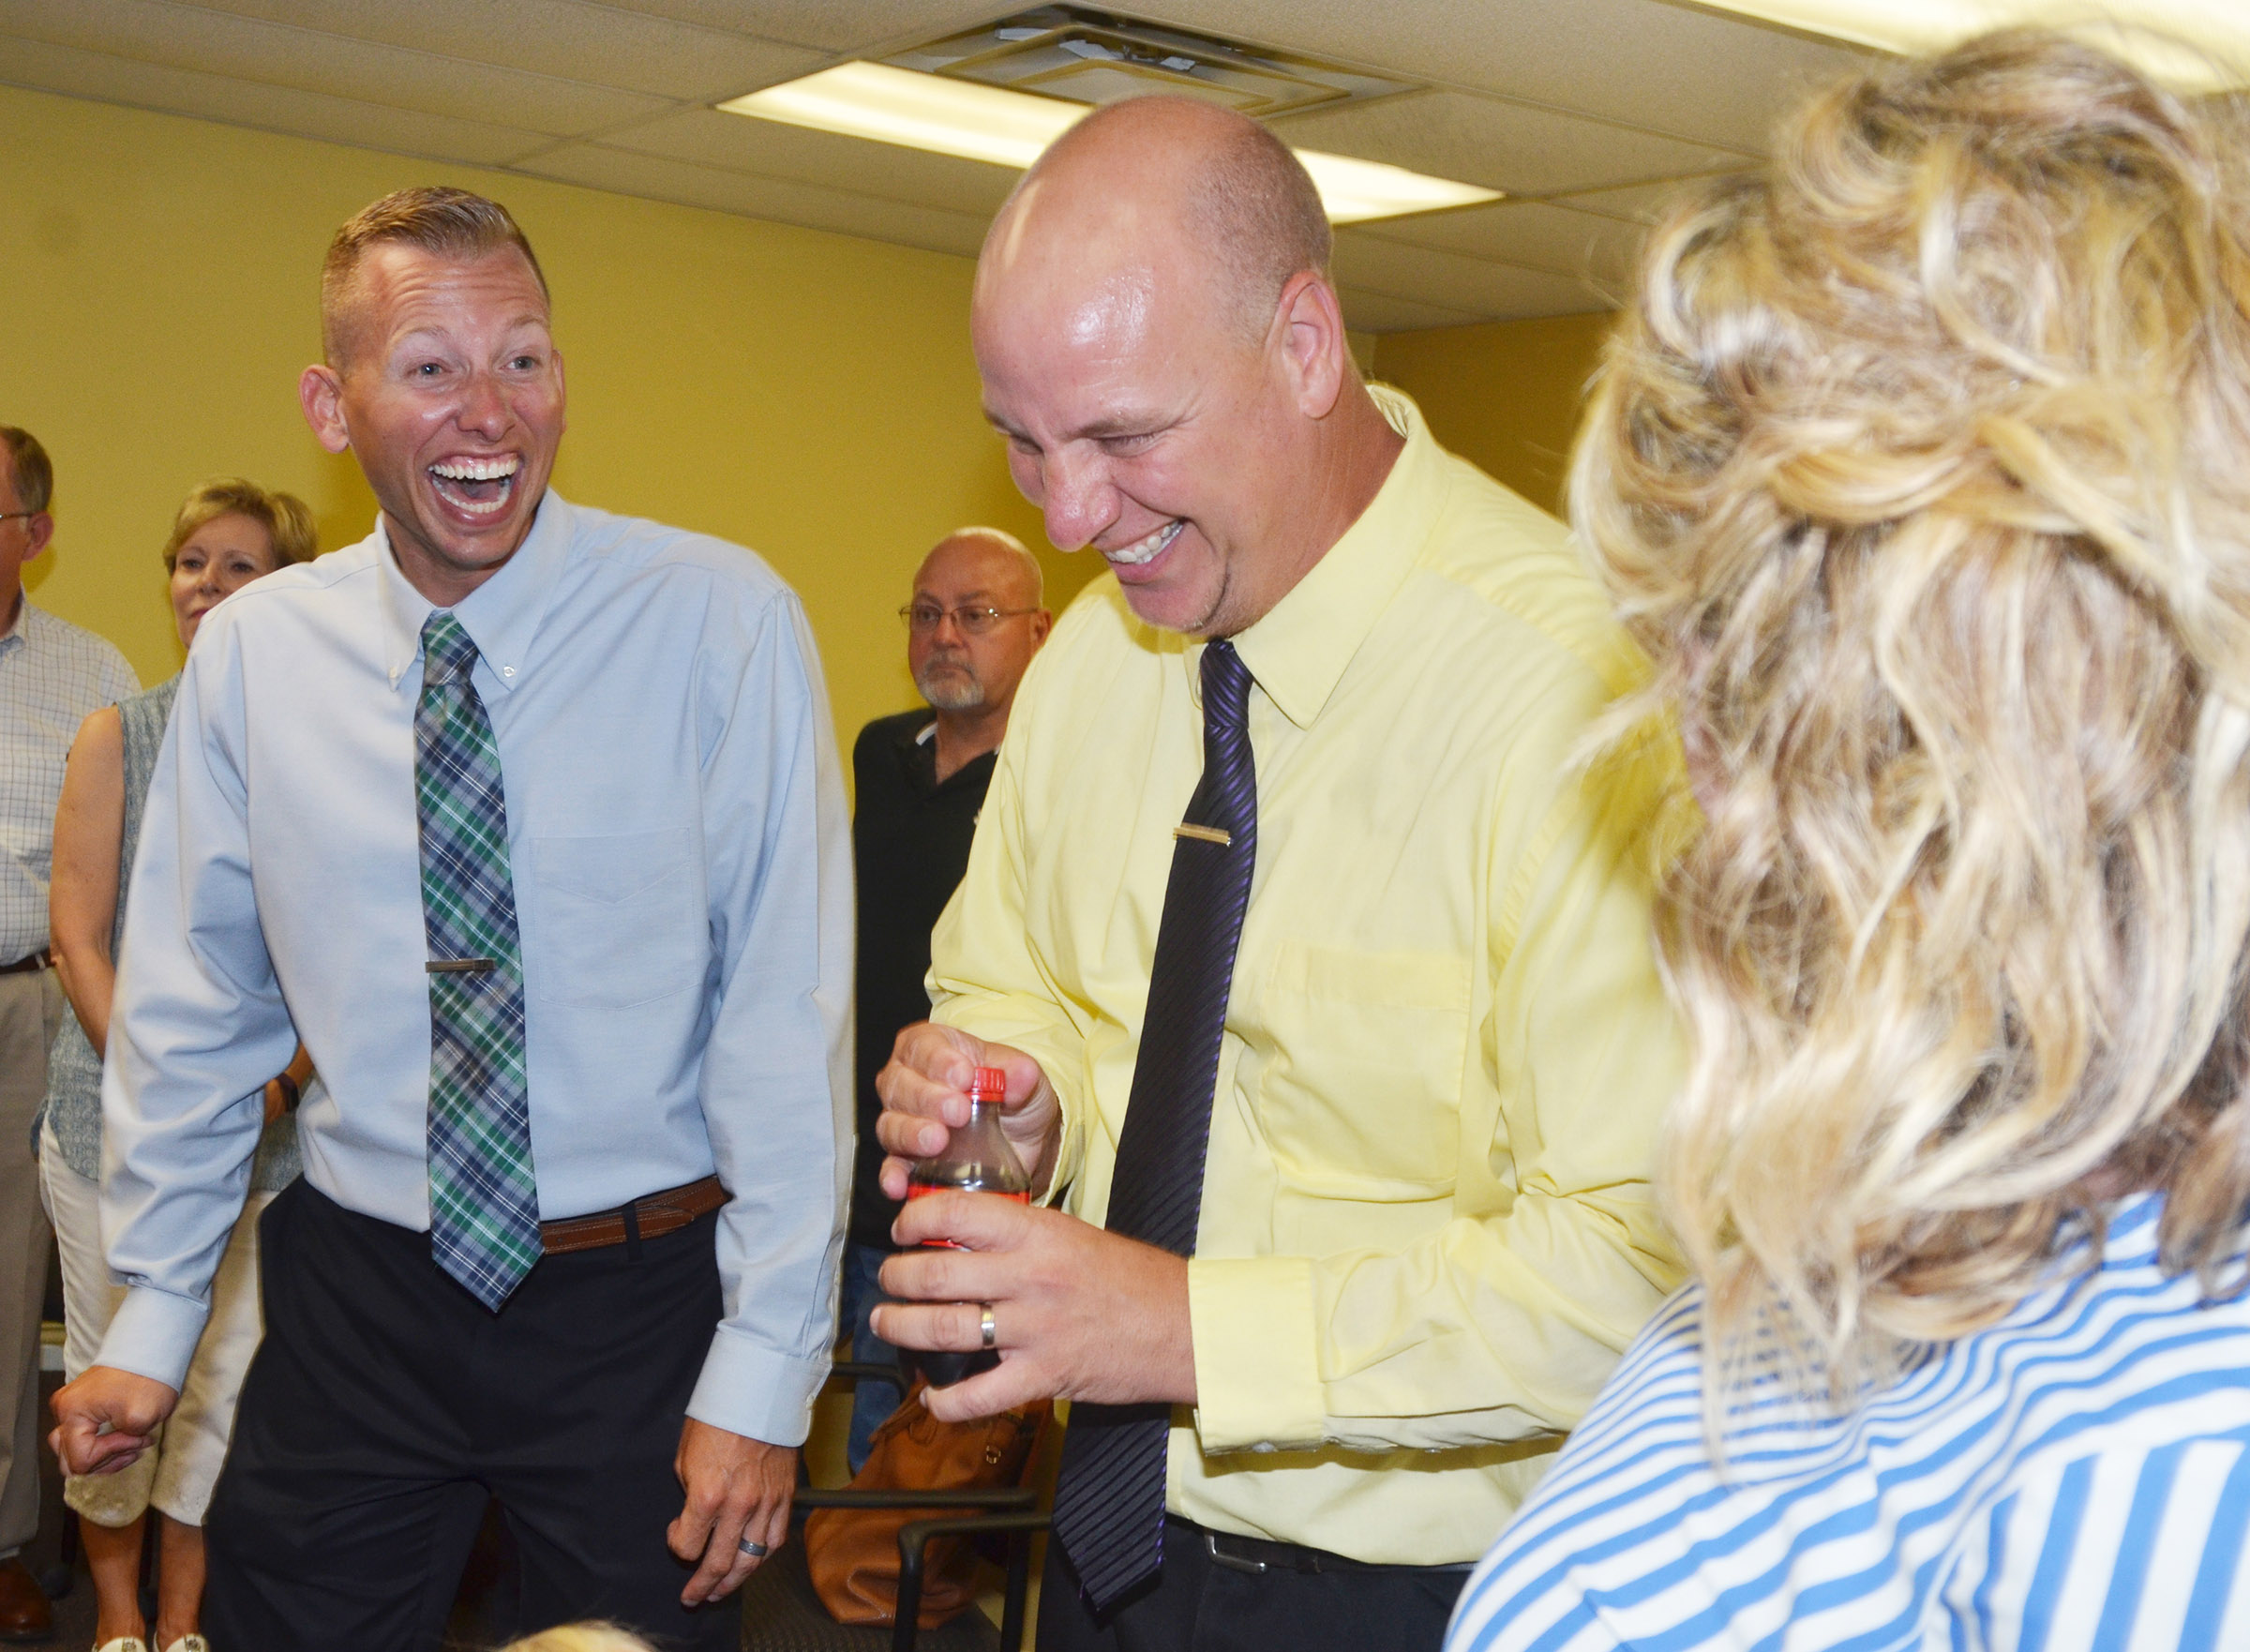 From left, CMS Principal Zach Lewis, CHS Principal David Petett and CES Principal Elisha Rhodes share a laugh.